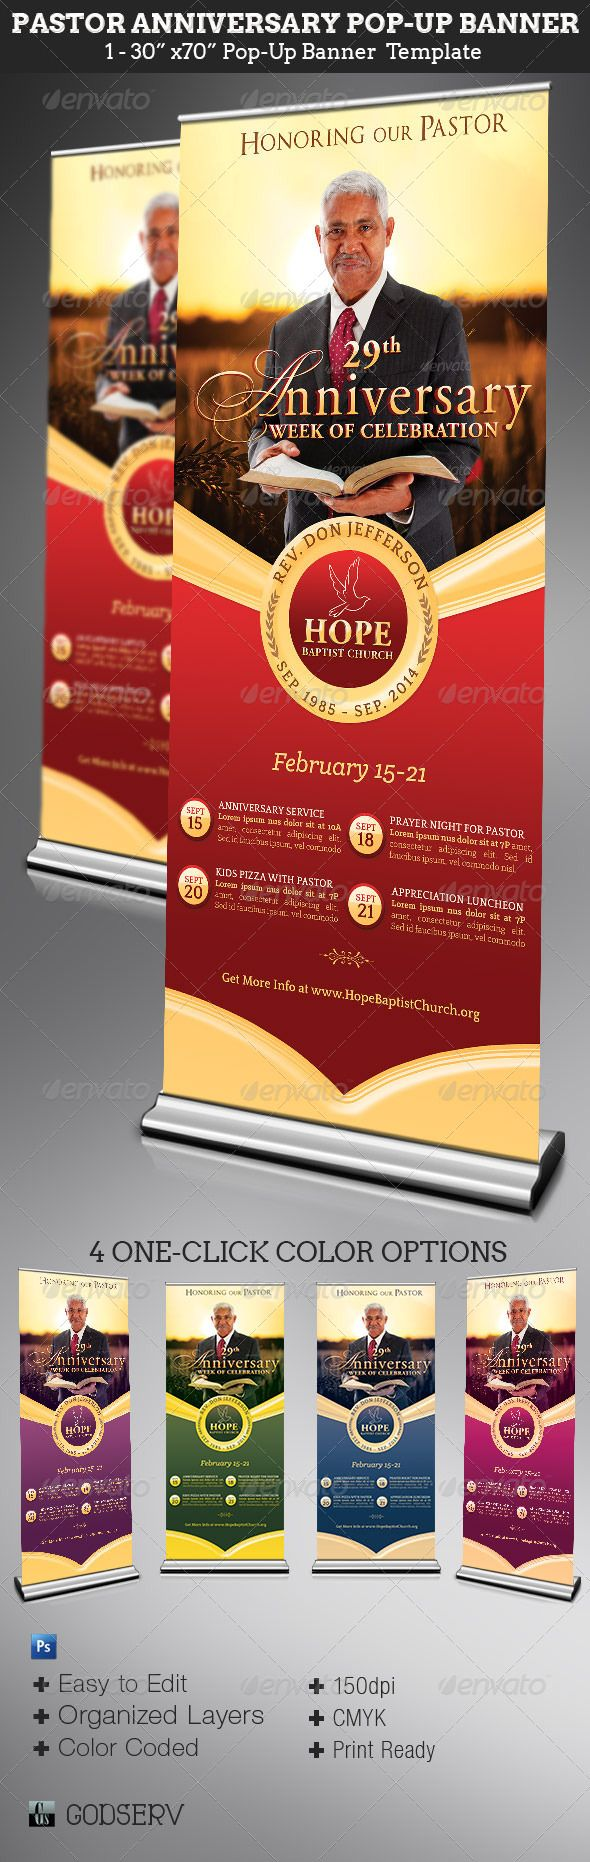 pastor anniversary pop up banner template 6 0 the pastor